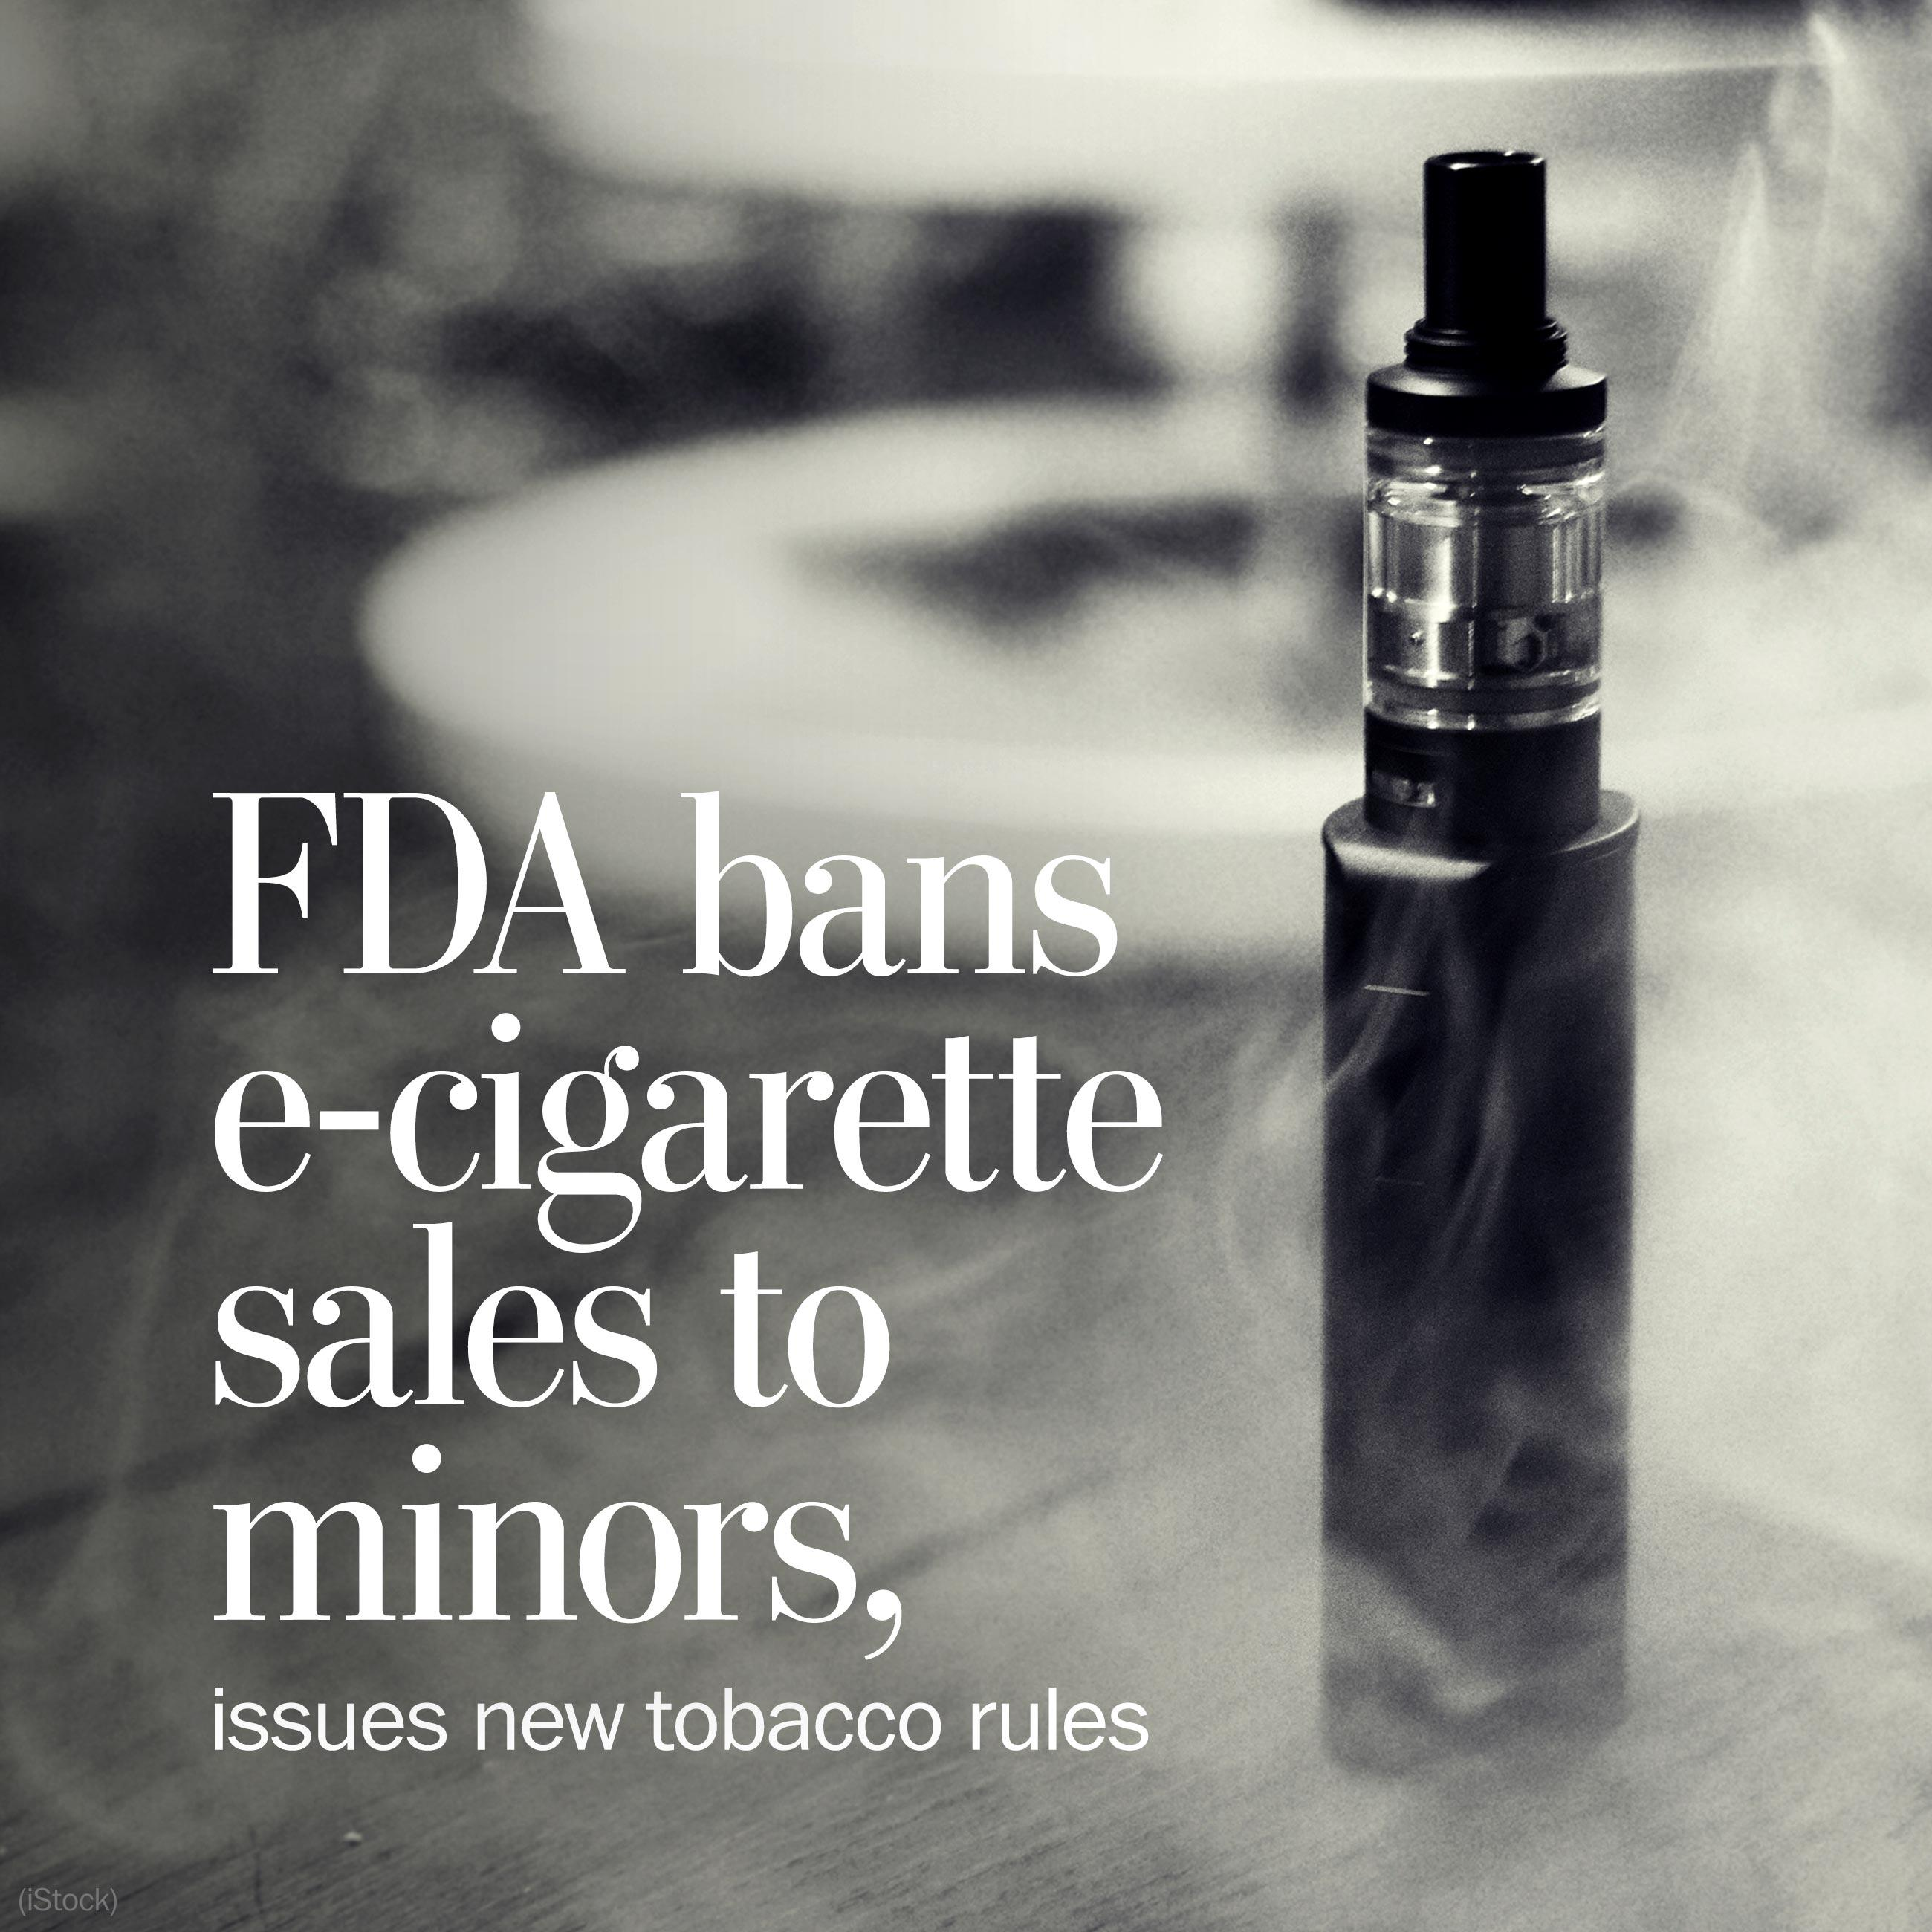 FDA bans e-cigarette sales to teens under 18